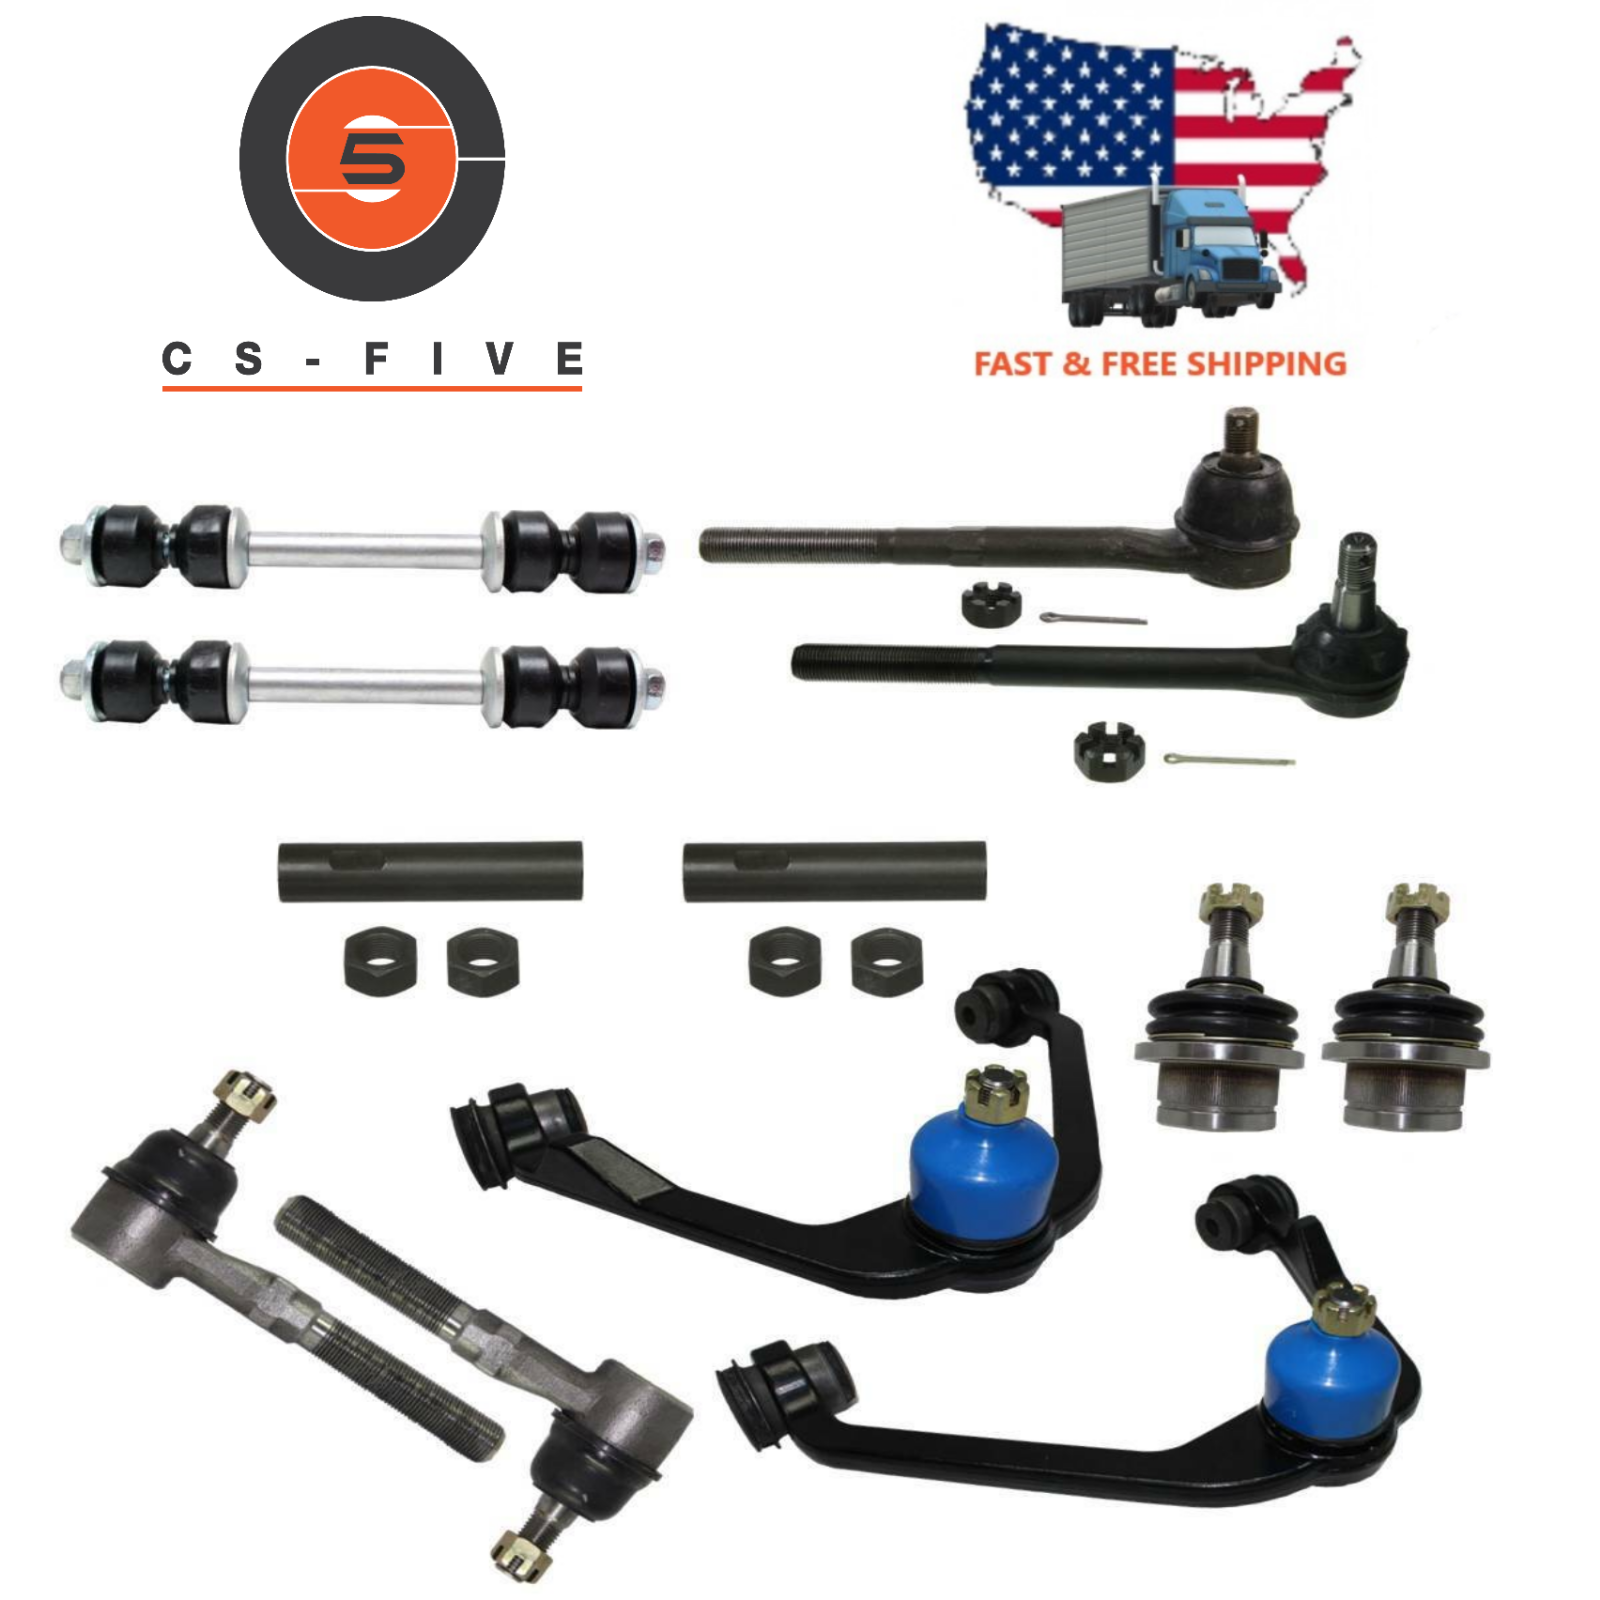 HD Ball joint Control Arm Tie Rod Front End Rebuild Kit 2001 Ford Expedition 2WD